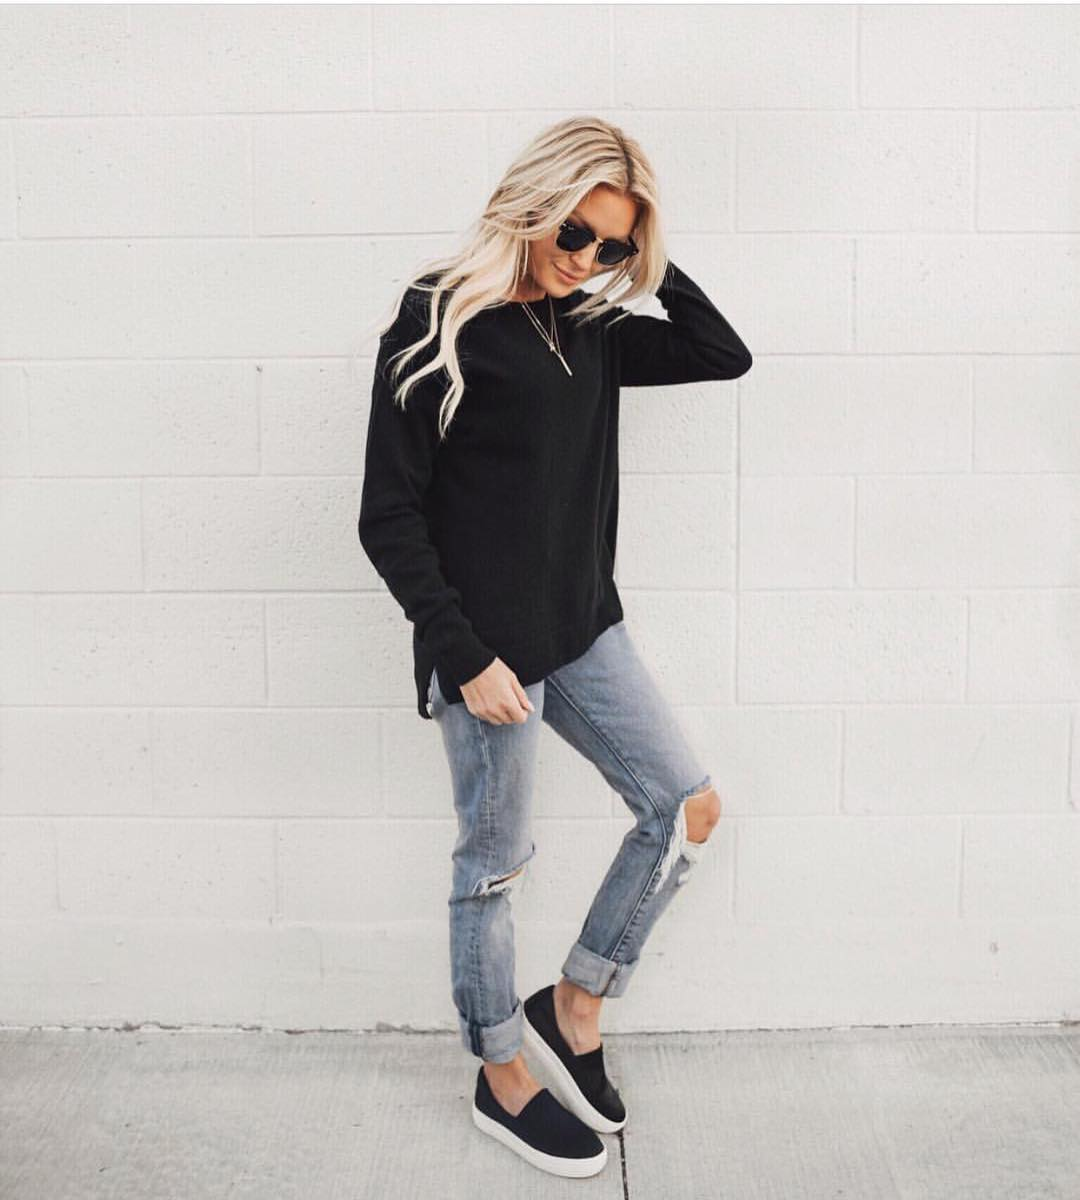 Black Oversized Sweater With Wash Blue Jeans And Black Slip On Shoes 2021